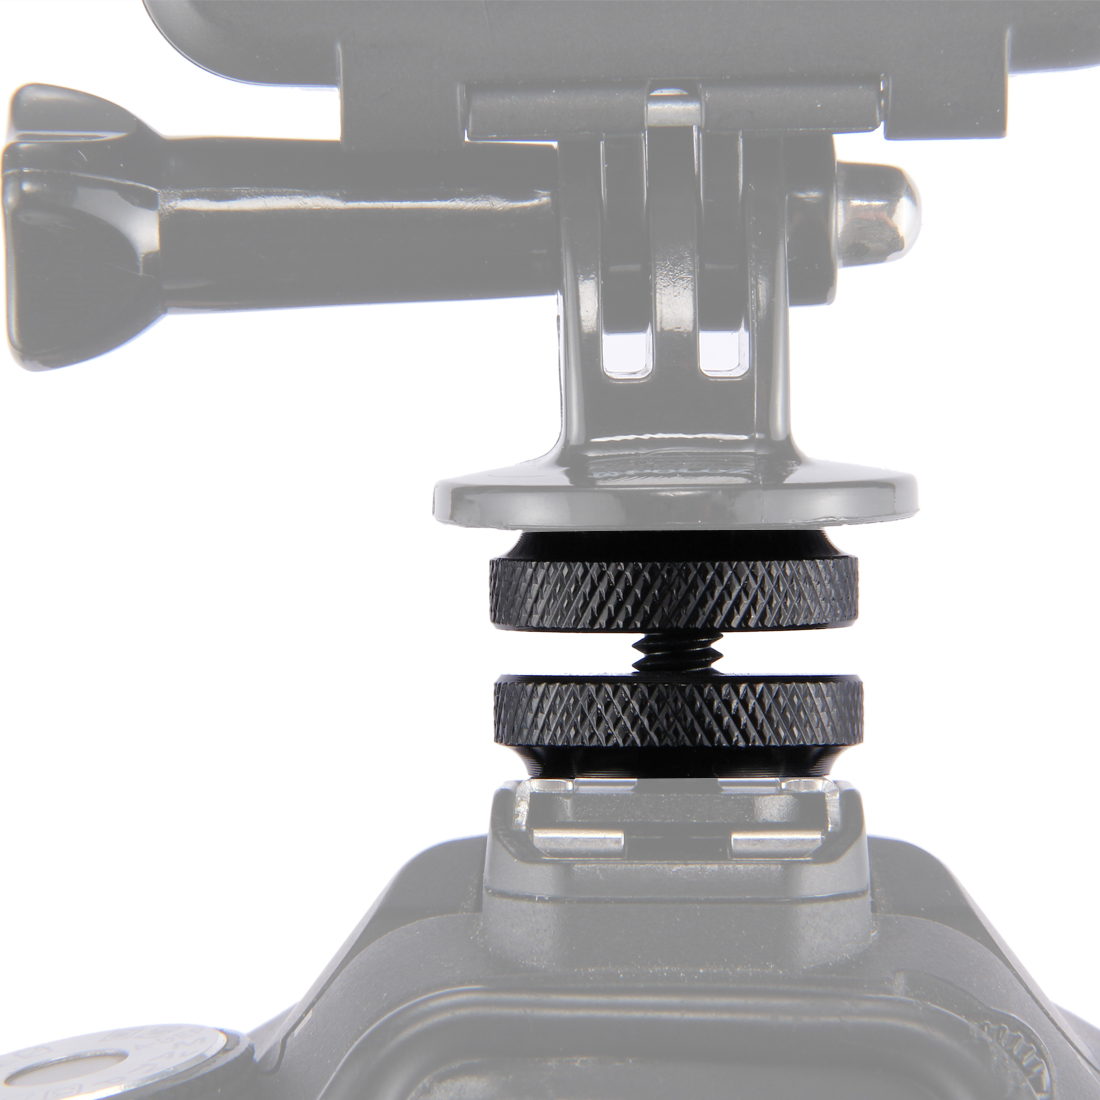 PULUZ Reinforced Hot Shoe 1/4 inch Screw Adapter with Double Nut for DSLR Cameras, GoPro